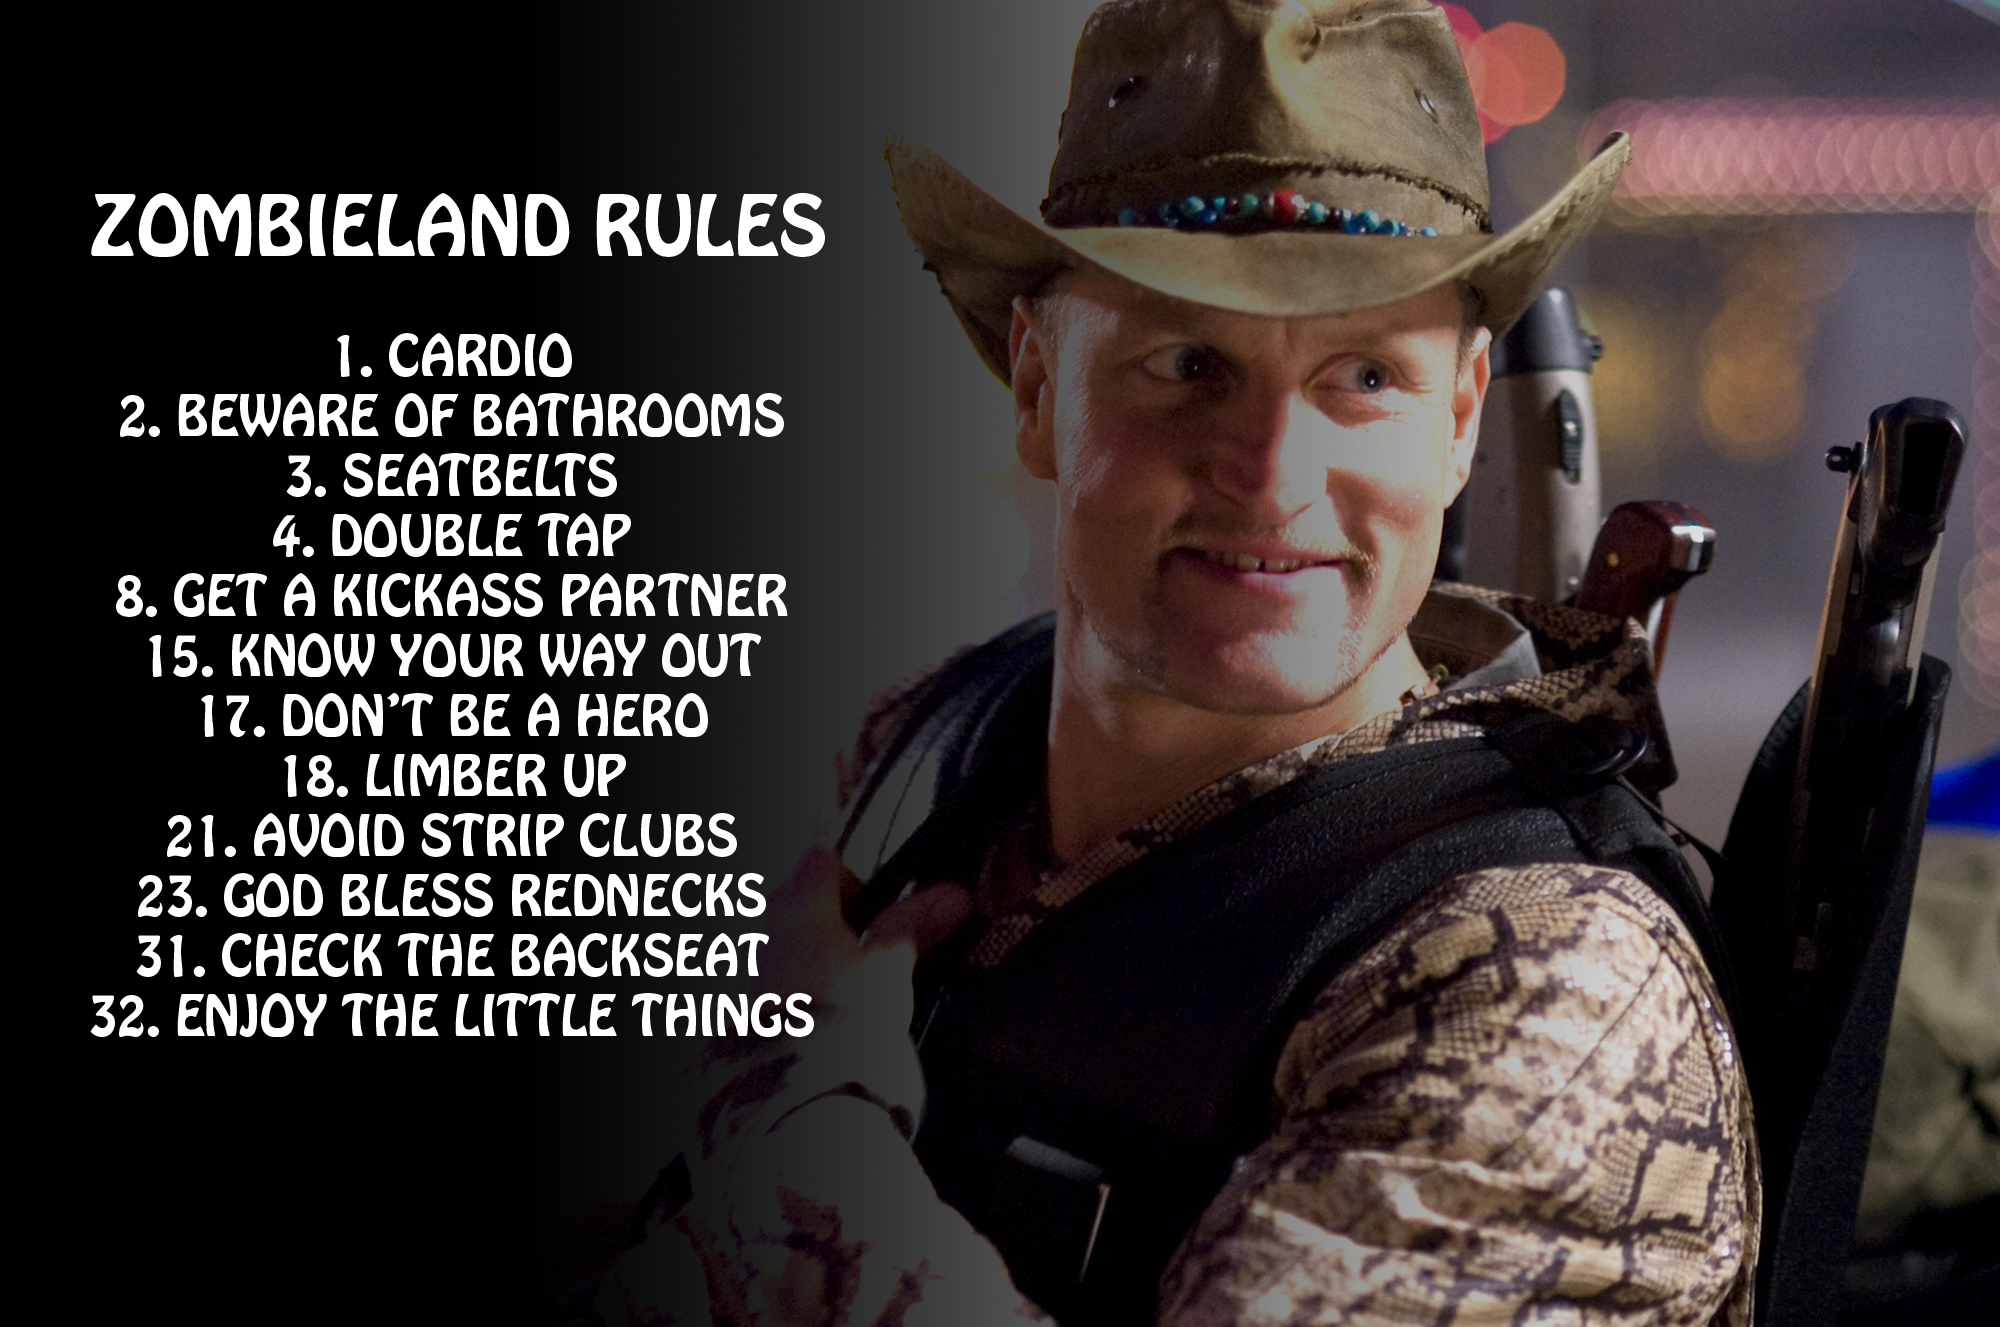 Zombieland: AMAZON'S TV PILOT FOR 'ZOMBIELAND' AND HOW IT FAILS IT'S